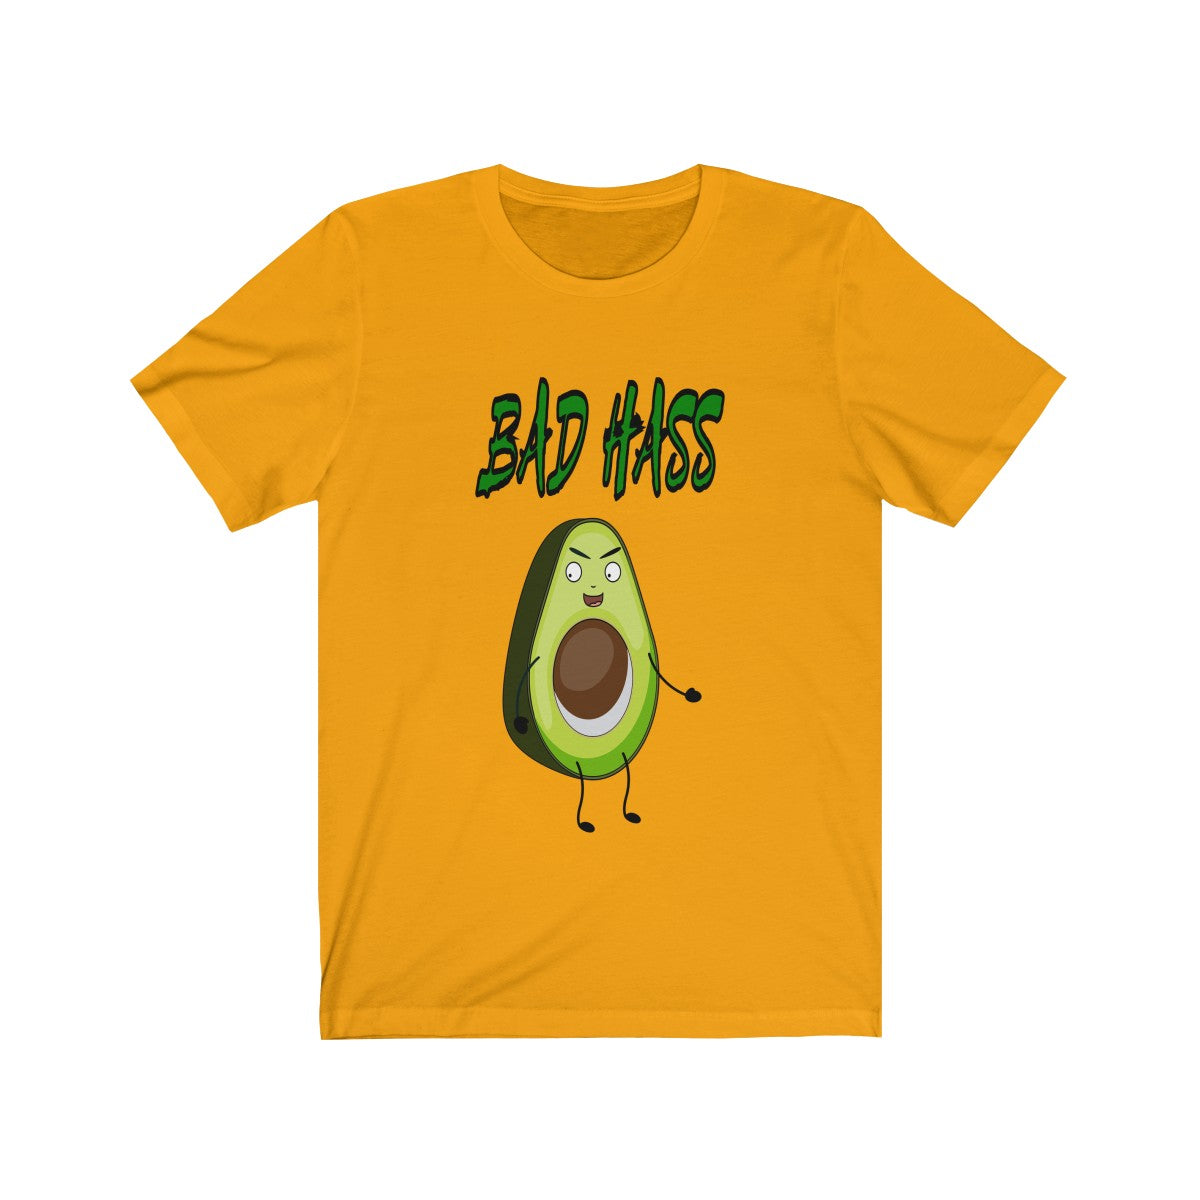 Bad Hass Unisex Jersey Short Sleeve Tee